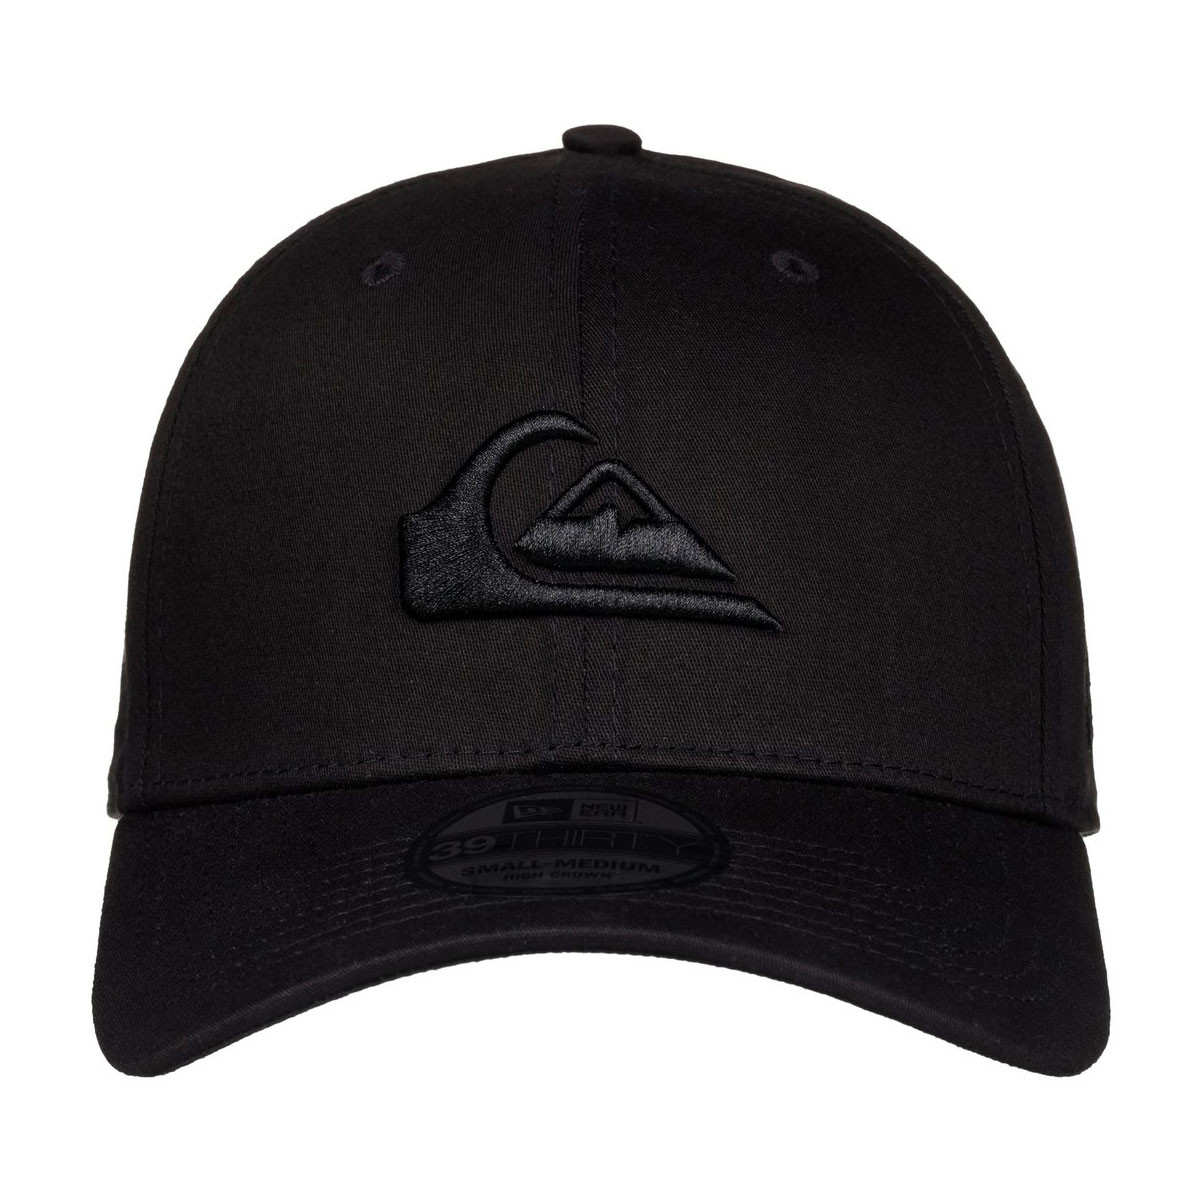 Kšiltovka Quiksilver Mountain & Wave Black